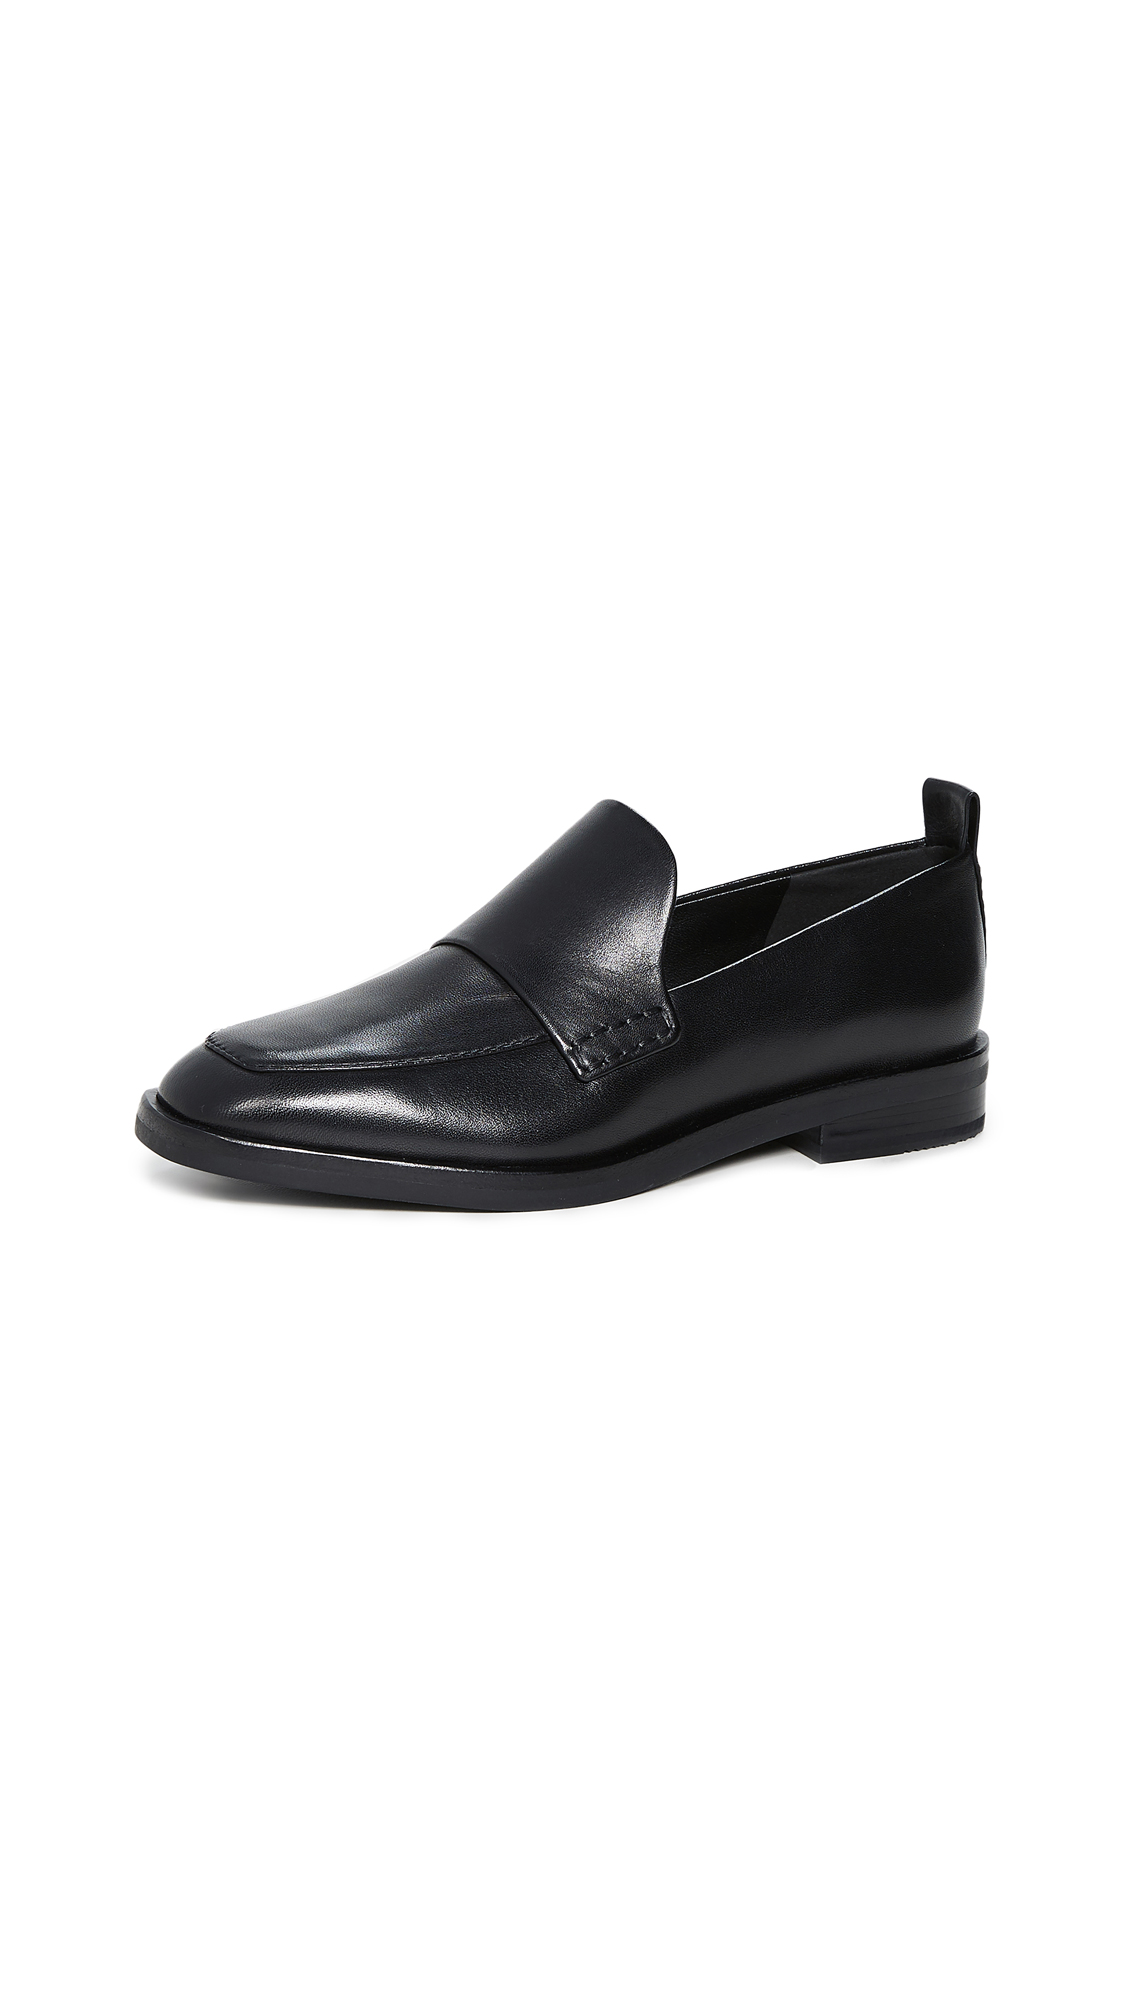 Buy 3.1 Phillip Lim Alexa 25mm Loafers online, shop 3.1 Phillip Lim